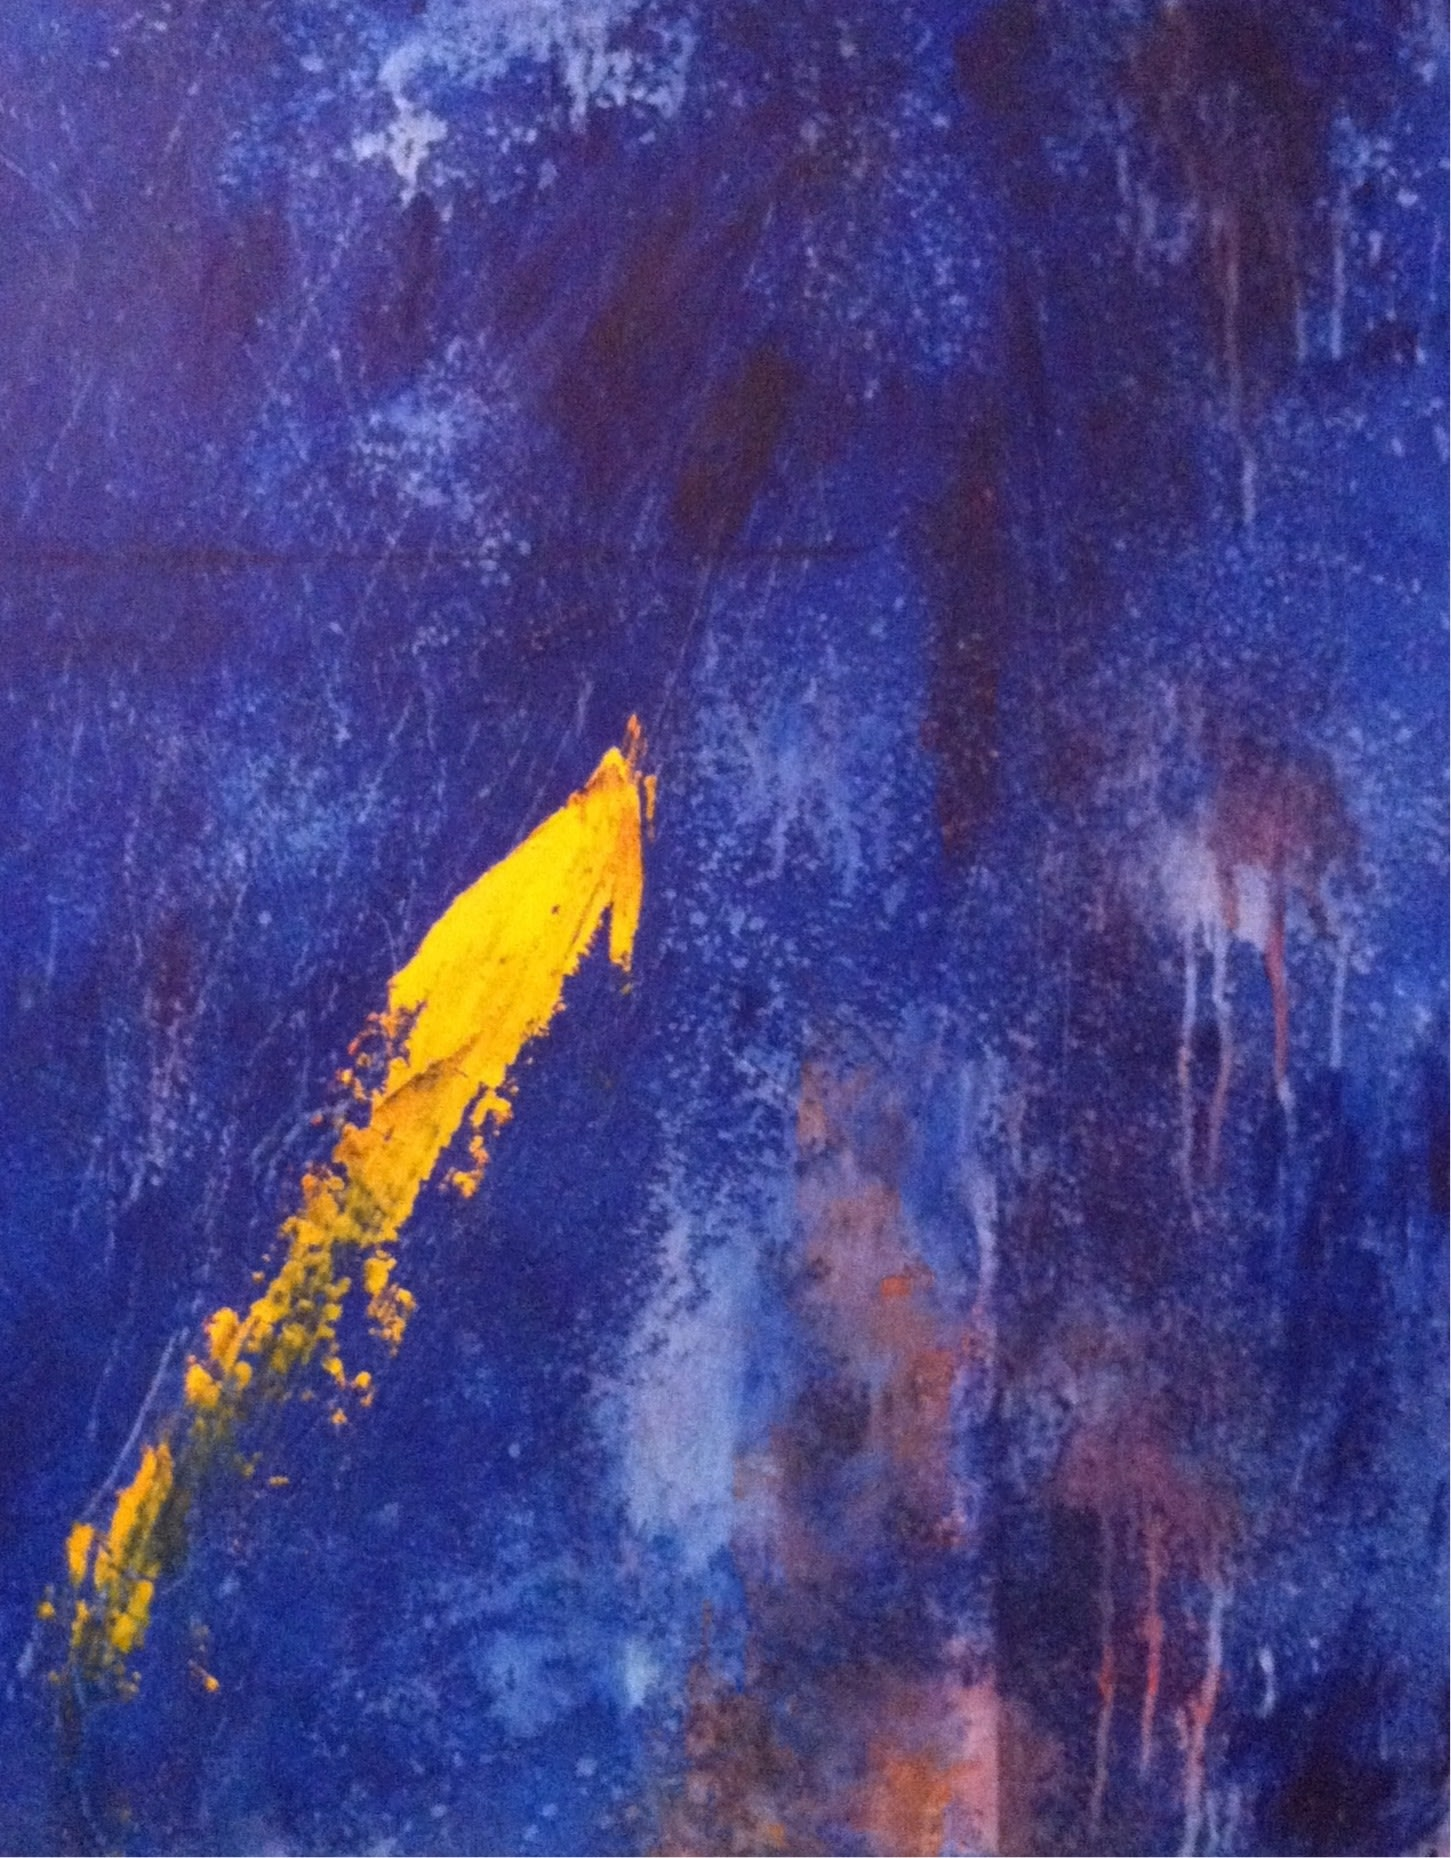 <div class='title'>           Koi         </div>                 <div class='description'>           Blue and yellow gold oil and cold wax painting inspired by a local koi pond. Mark Witzling artist.         </div>